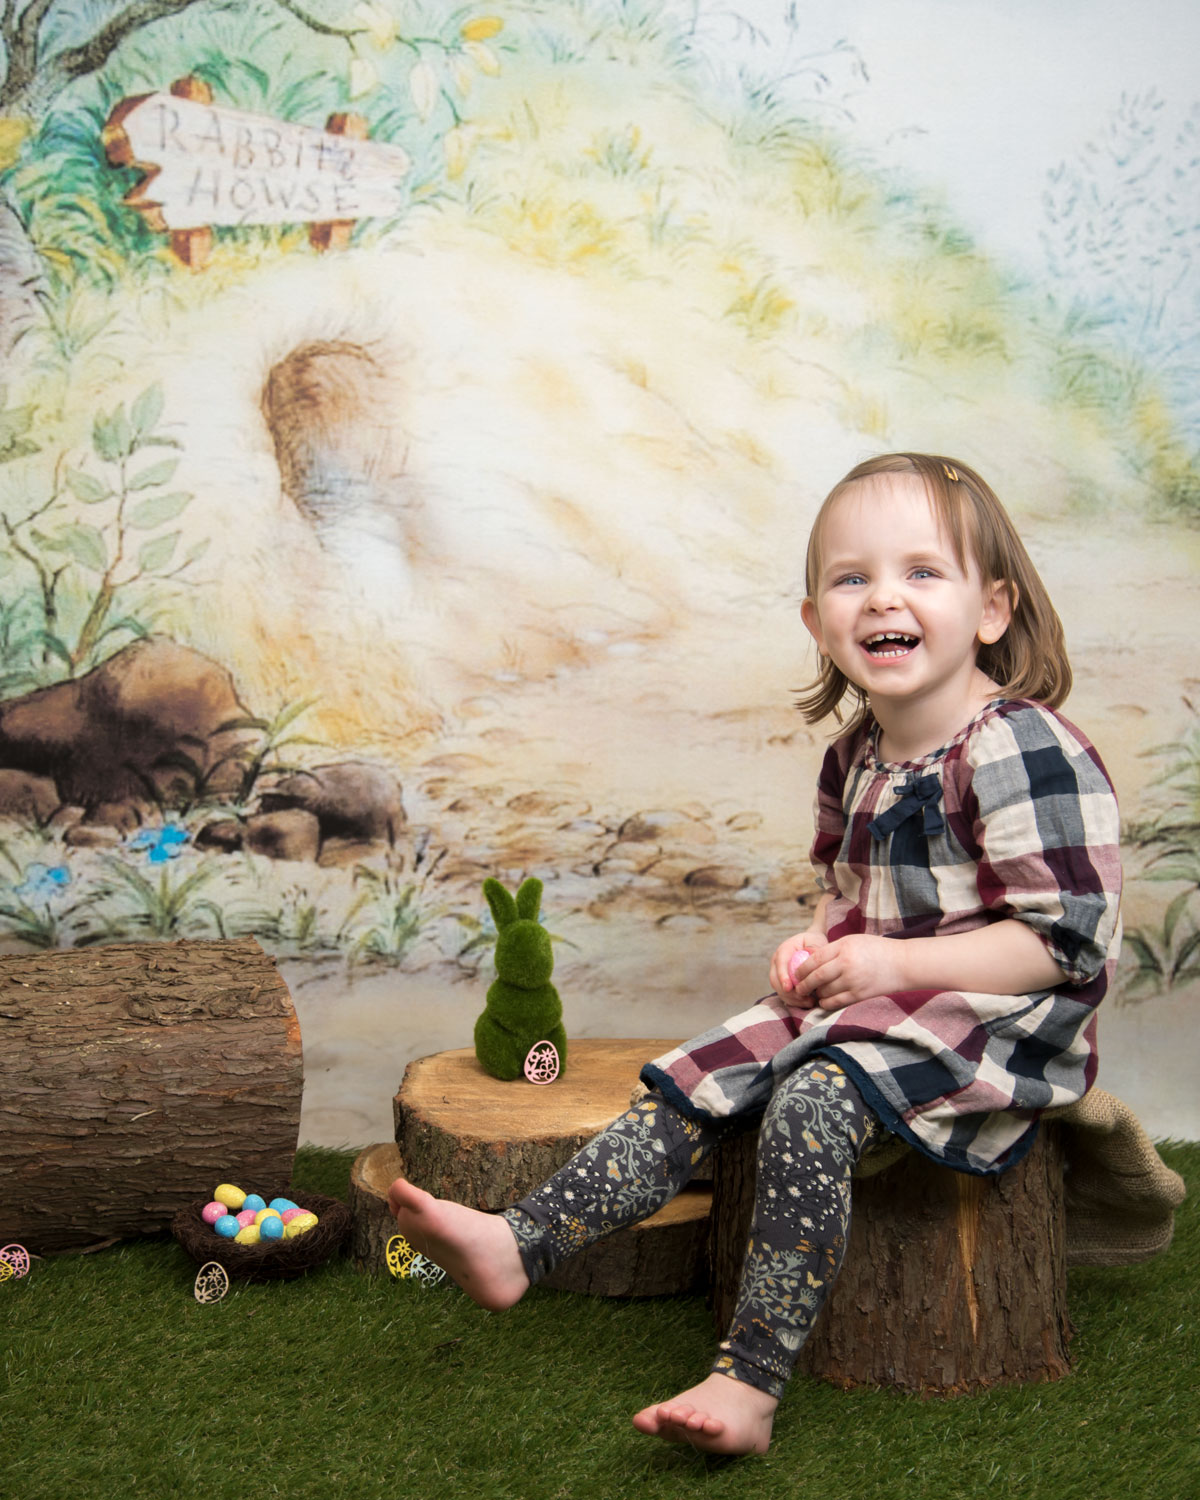 baby_photography_Ely_Cambridgeshire_easter_mini_session_pooh_themed_backdrop.jpg